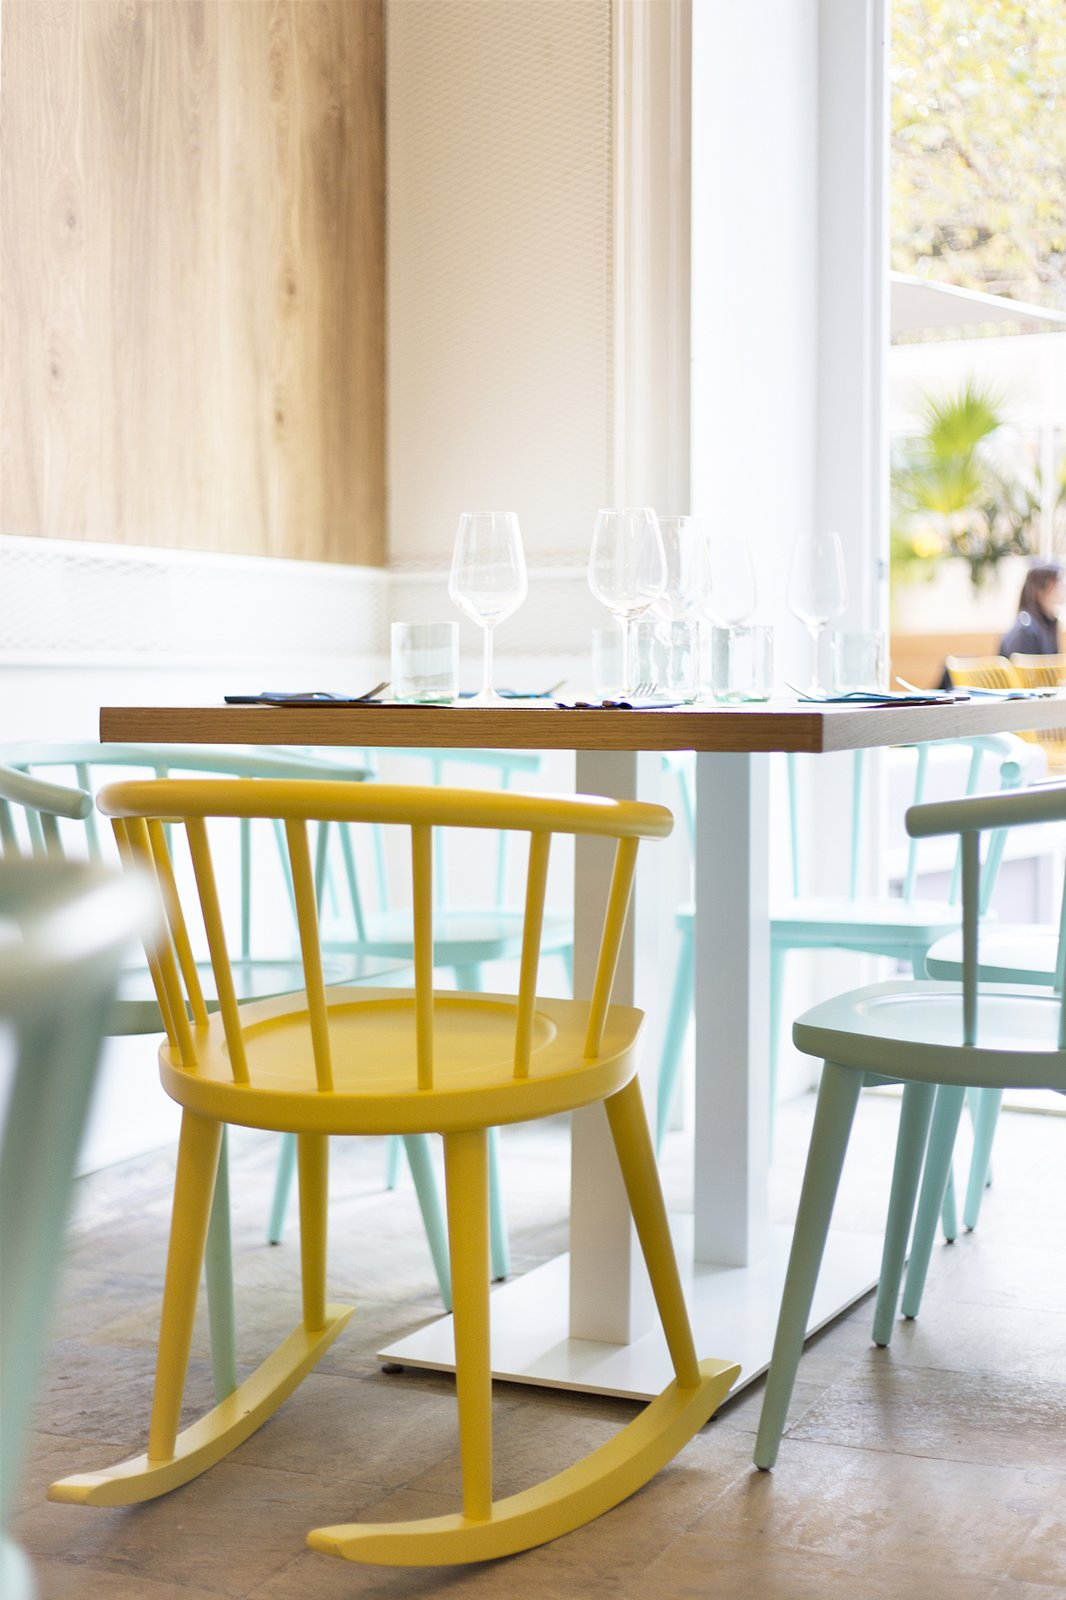 Dining Room, Chair, and Table A mix of chair types adds playfulness.  Photo 8 of 10 in A Gloomy Basement is Reborn Into a Vibrant Italian Bistro